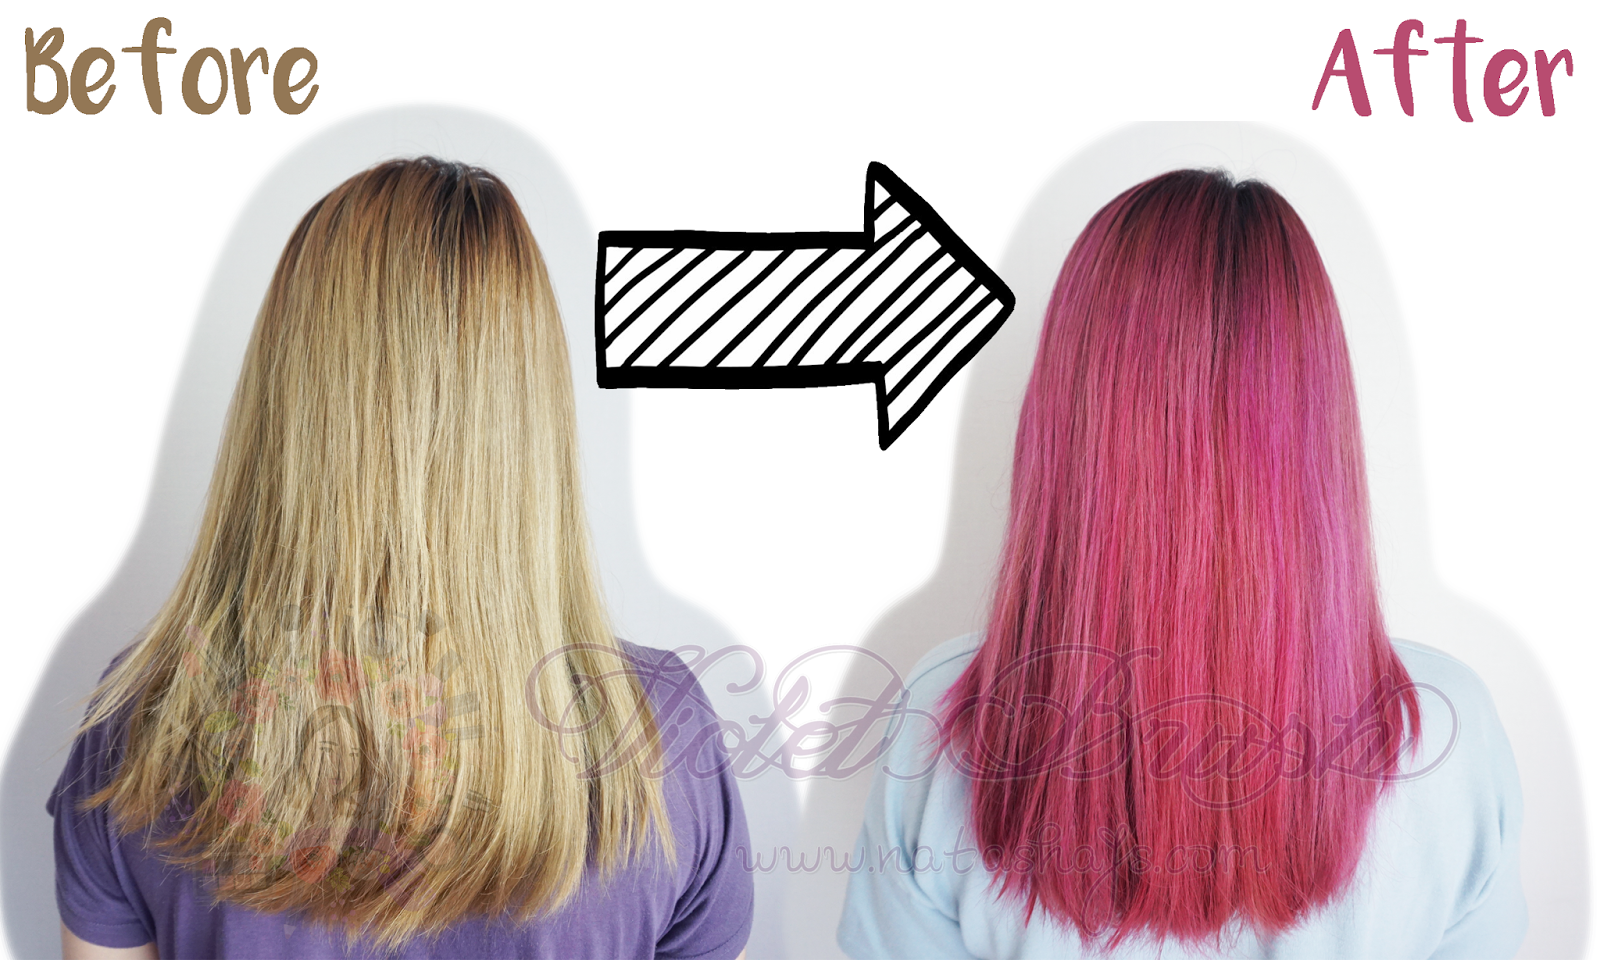 purple-pink-hair-transformation-tutorial-by-indonesian-beauty-blogger-unicorn-hair-moeta-pop-devil-color-treatment-ampoule-review